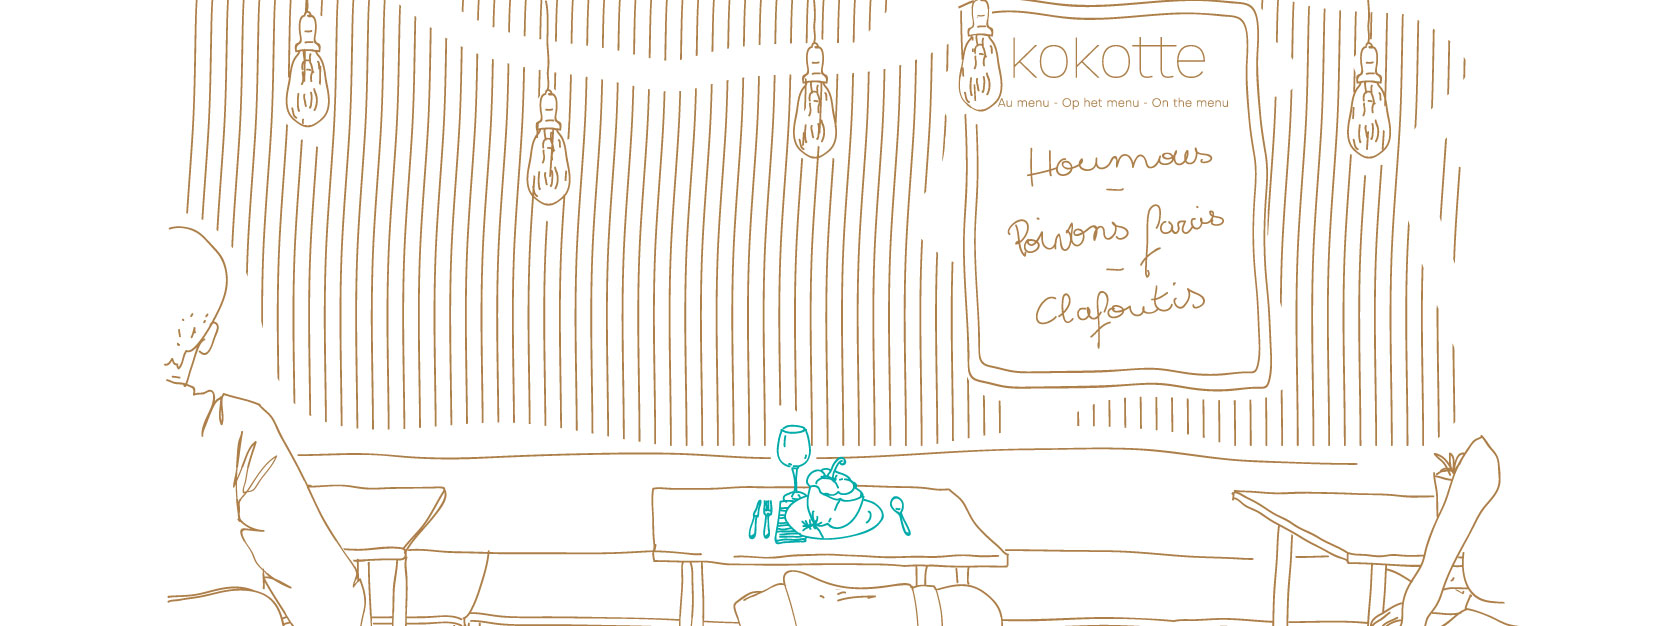 Kokotte: the call for applications for our pop-up restaurant is open!